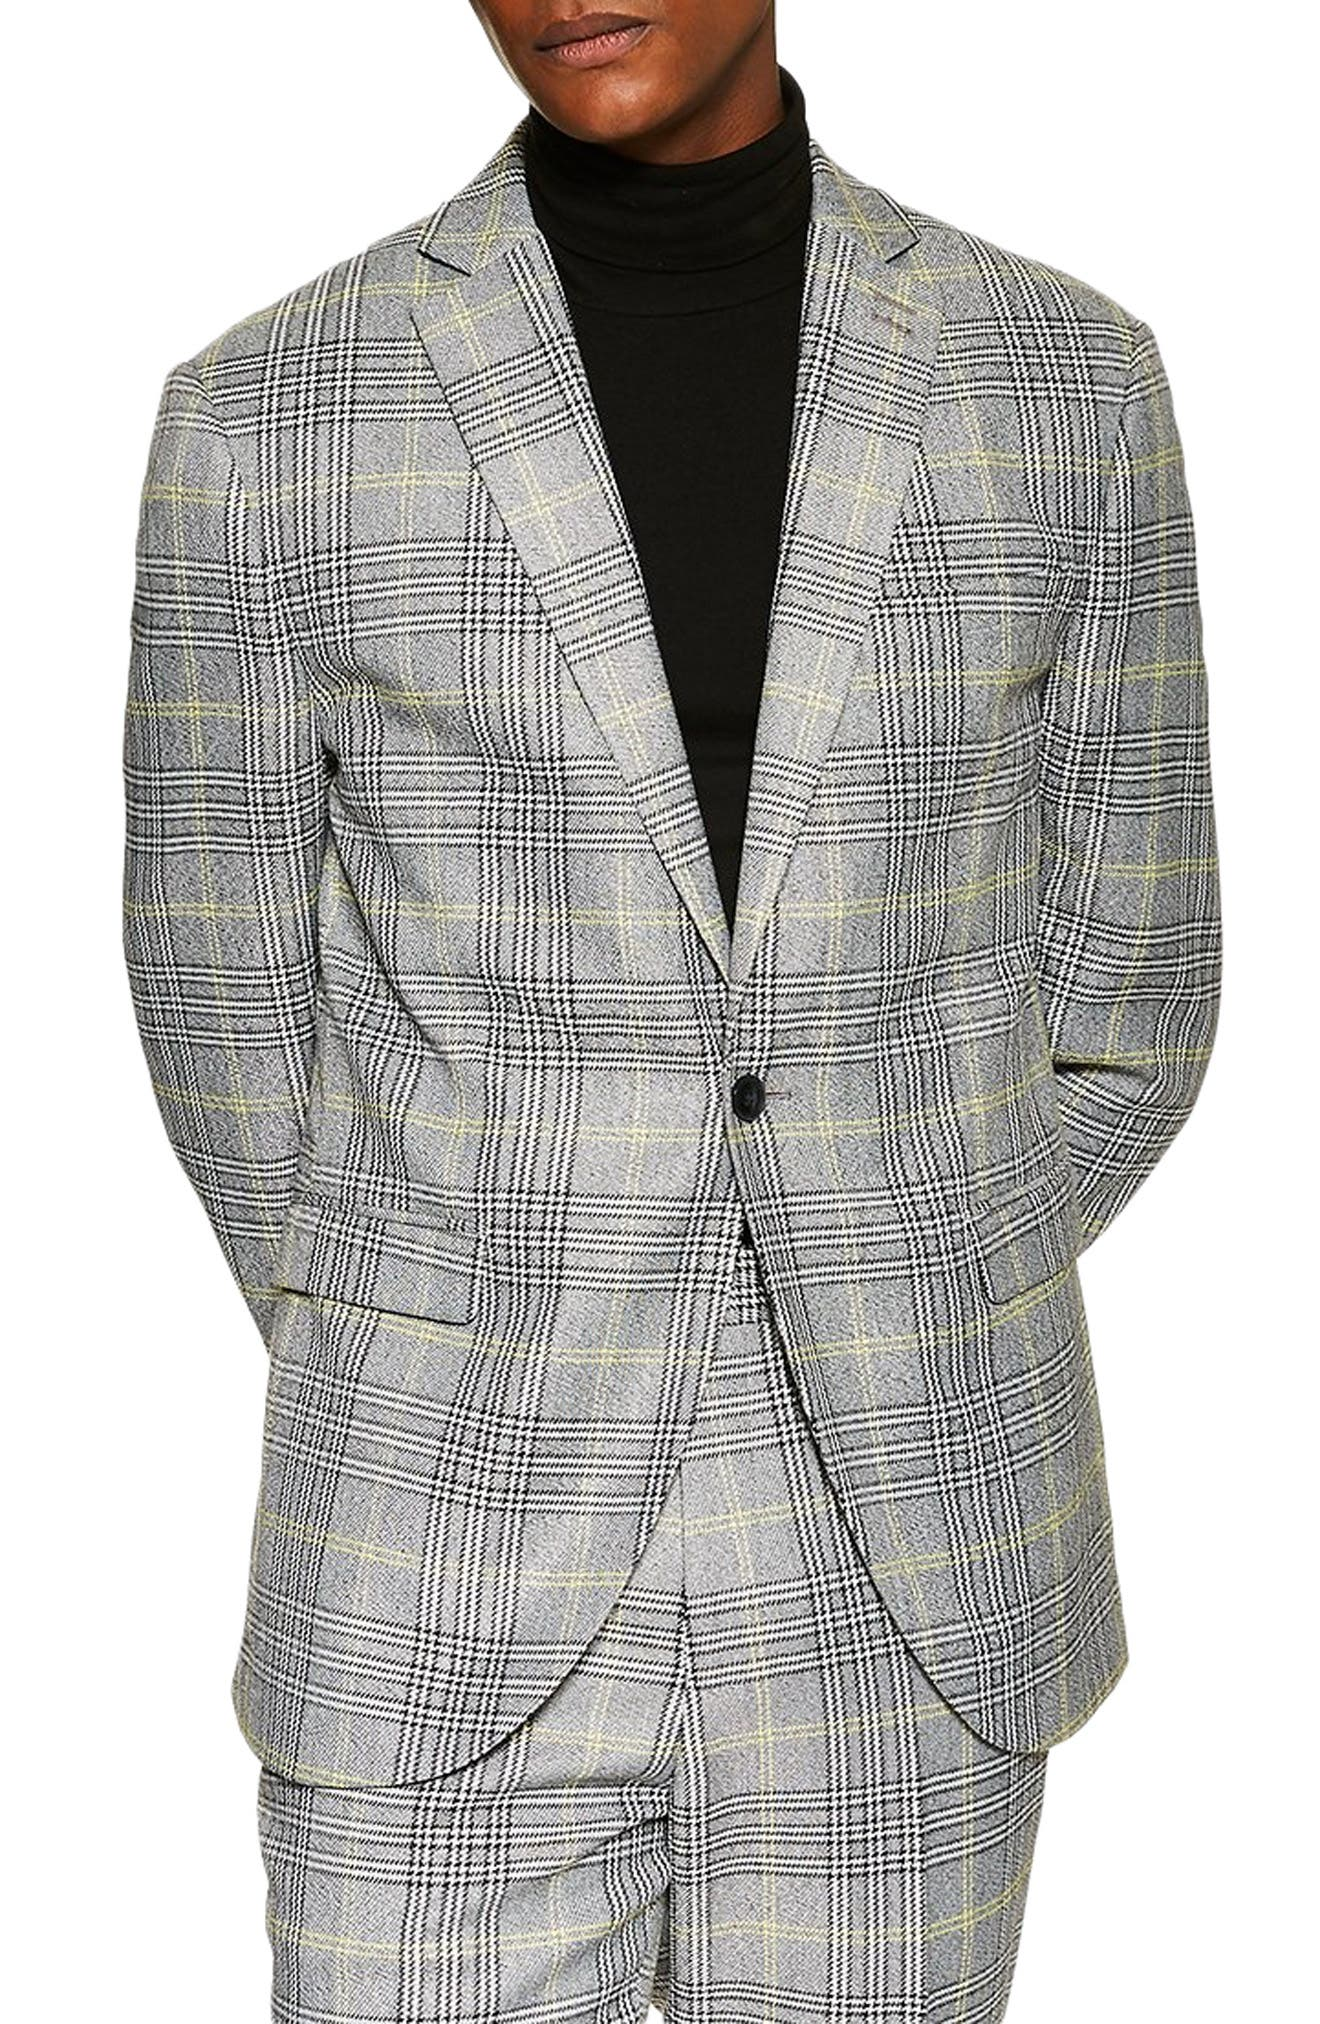 TOPMAN Single Breasted Check Slim Suit Jacket, Main, color, GREY